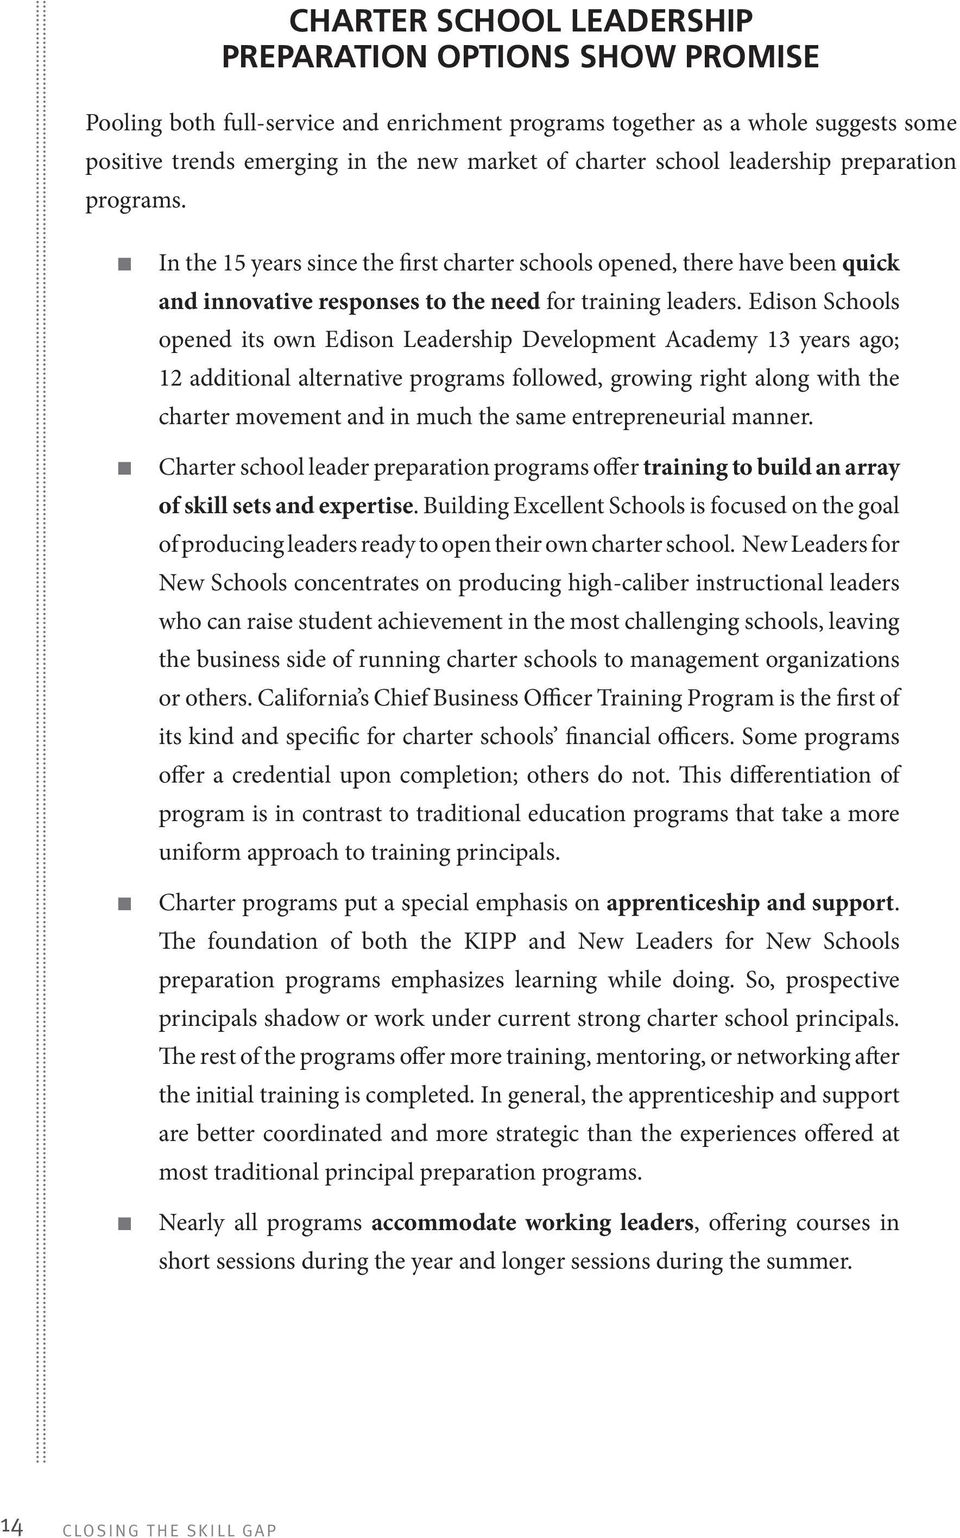 Edison Schools opened its own Edison Leadership Development Academy 13 years ago; 12 additional alternative programs followed, growing right along with the charter movement and in much the same